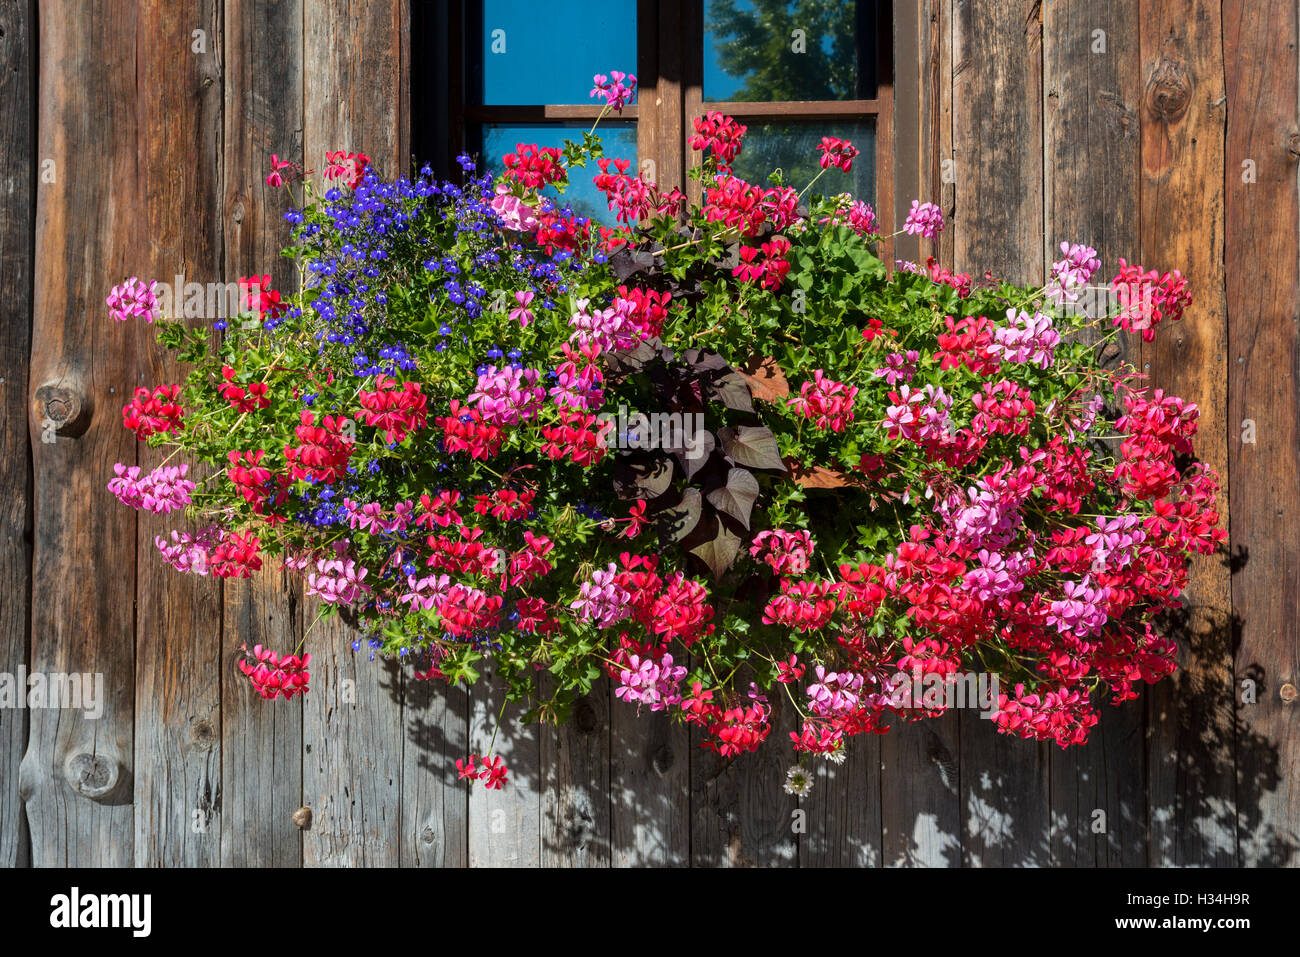 Window with flower box, wooden wall, medieval historic village of Yvoire, Haute-Savoie, France - Stock Image